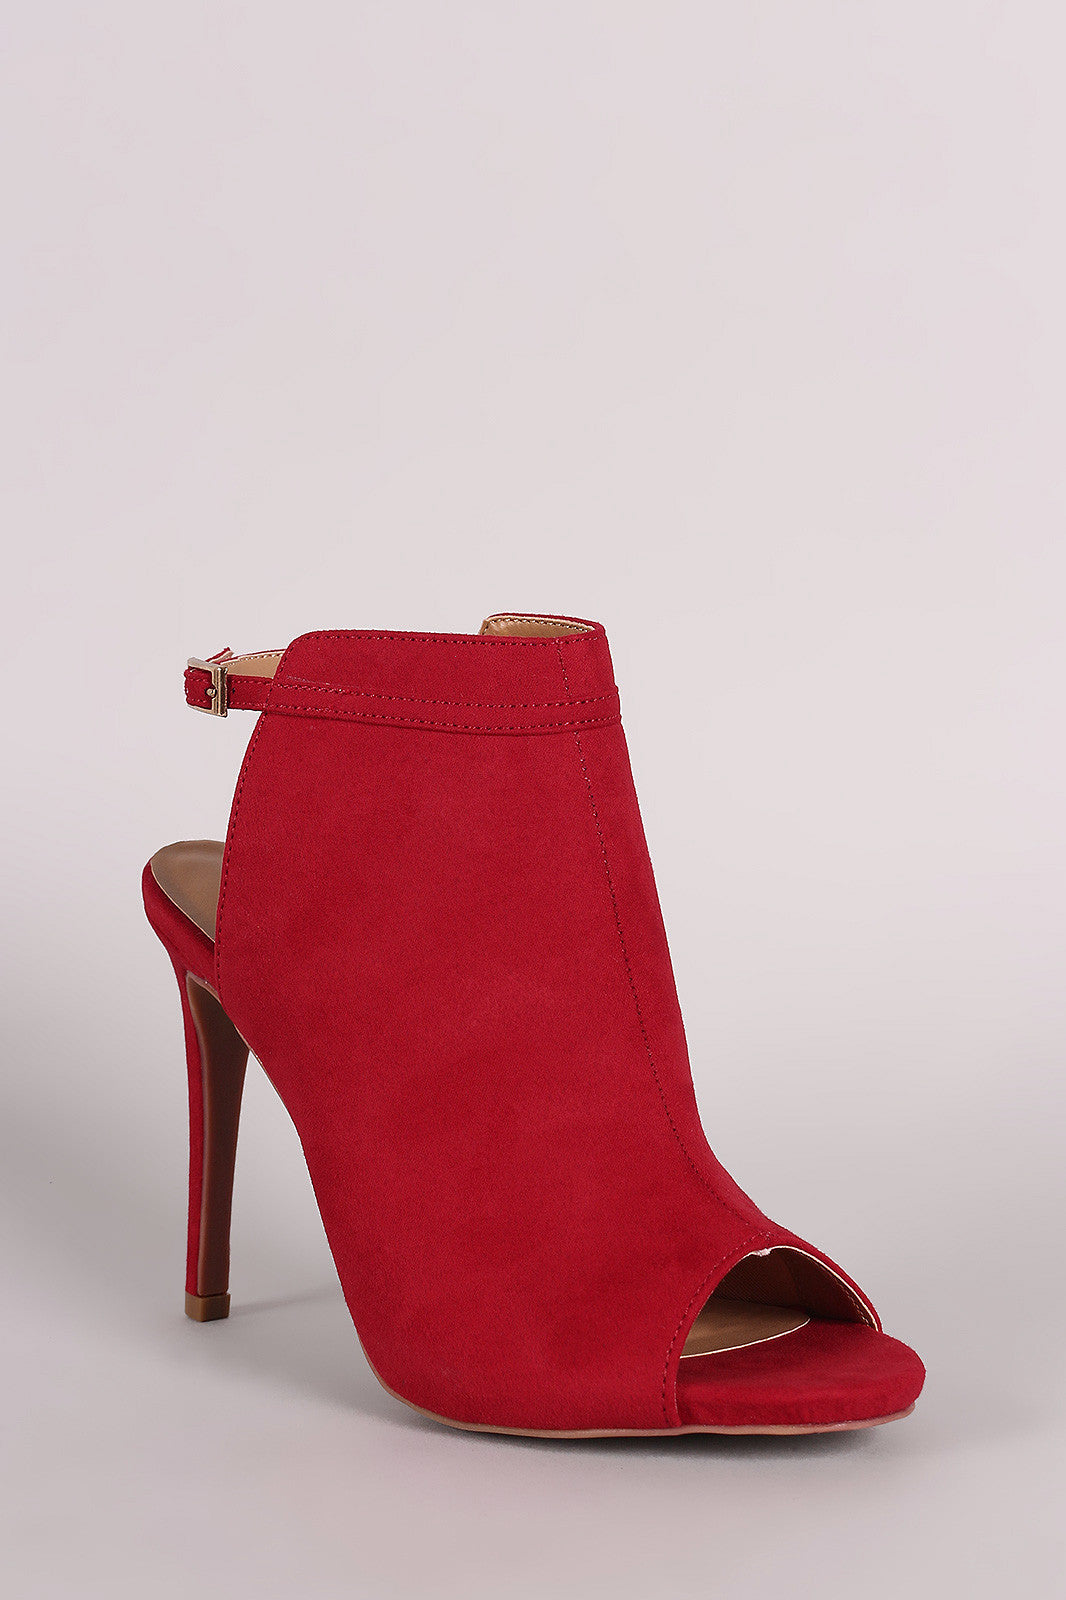 Anne Michelle Suede Peep Toe Mule Booties - Thick 'N' Curvy Shop - 2